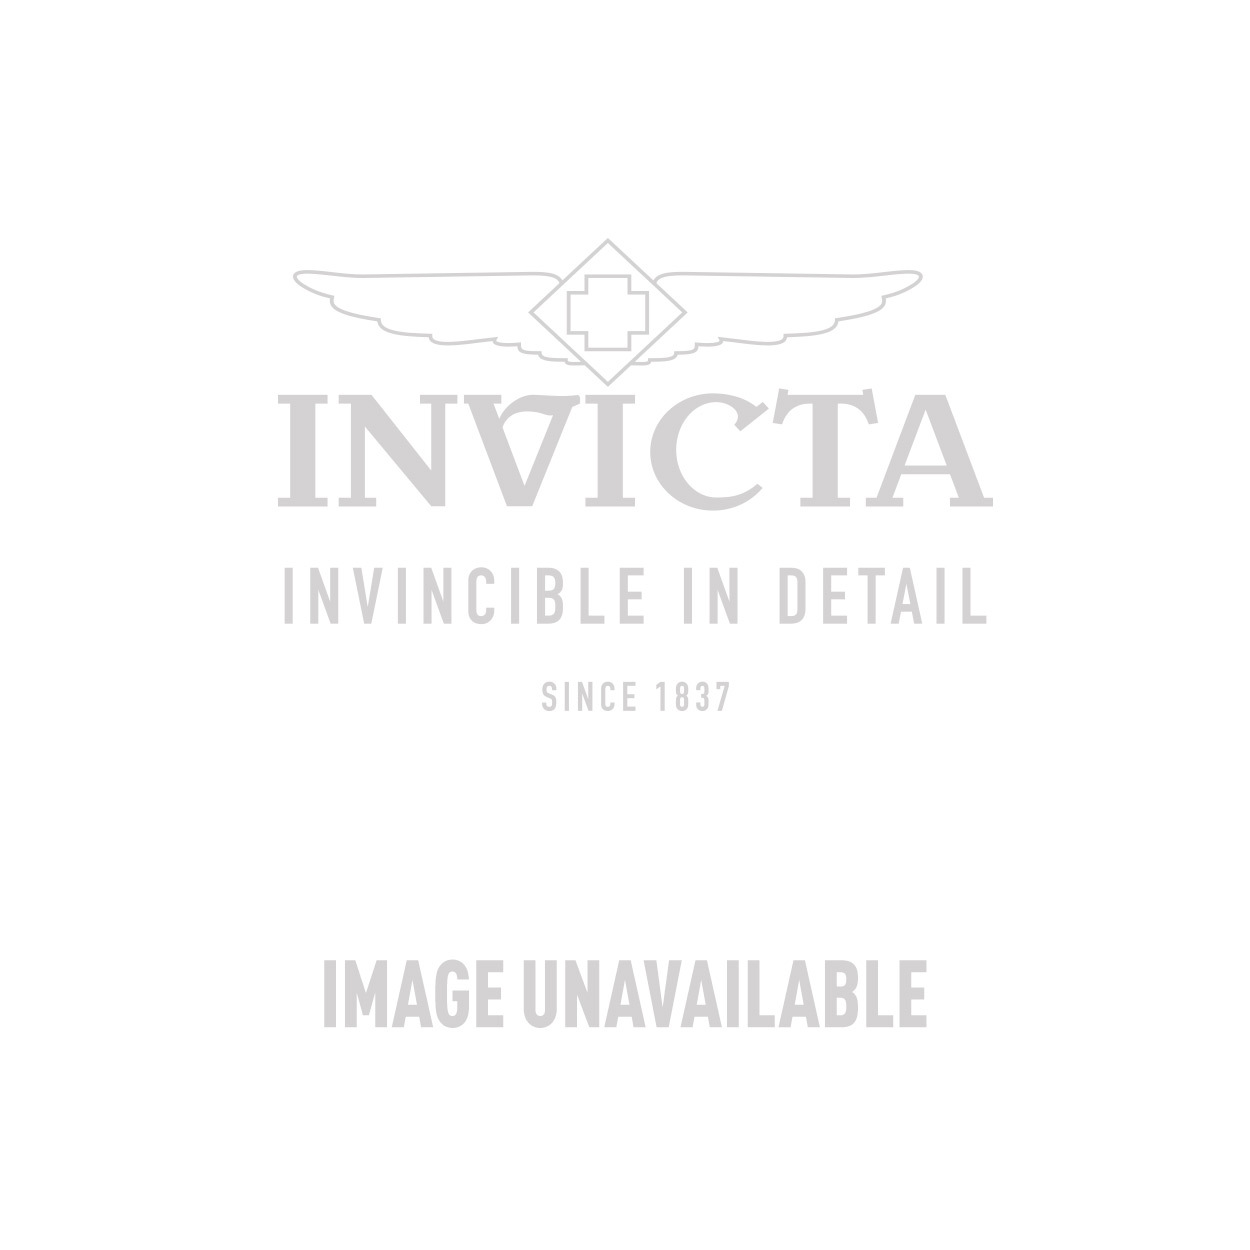 Invicta JT Swiss Made Quartz Watch - Black, Stainless Steel case with Steel, Black tone Stainless Steel band - Model 13048